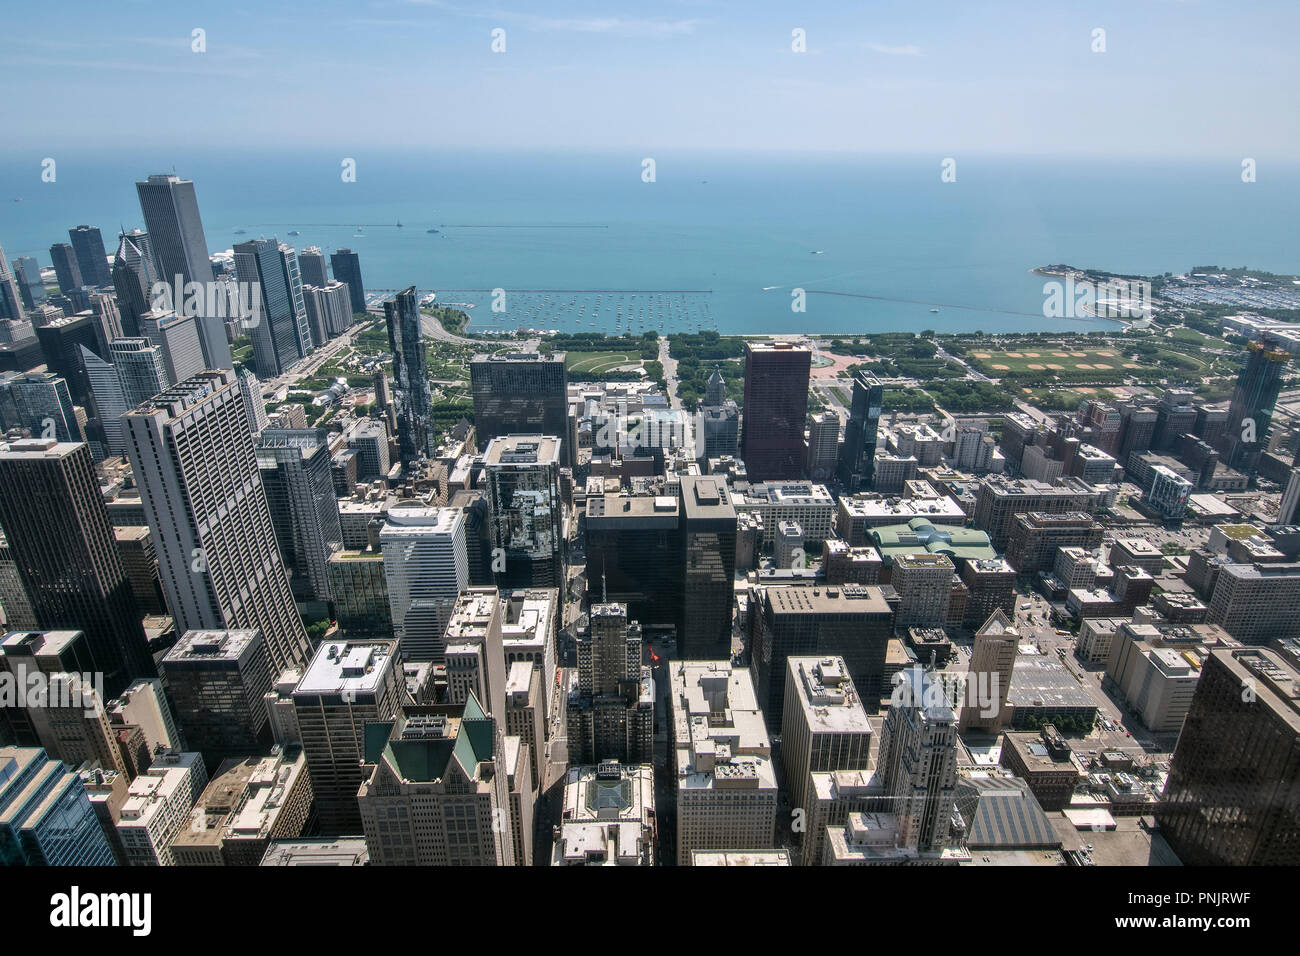 View of downtown Chicago skyscrapers, Millennium Park and Lake Michigan from Willis Tower Skydeck, Chicago, IL. - Stock Image